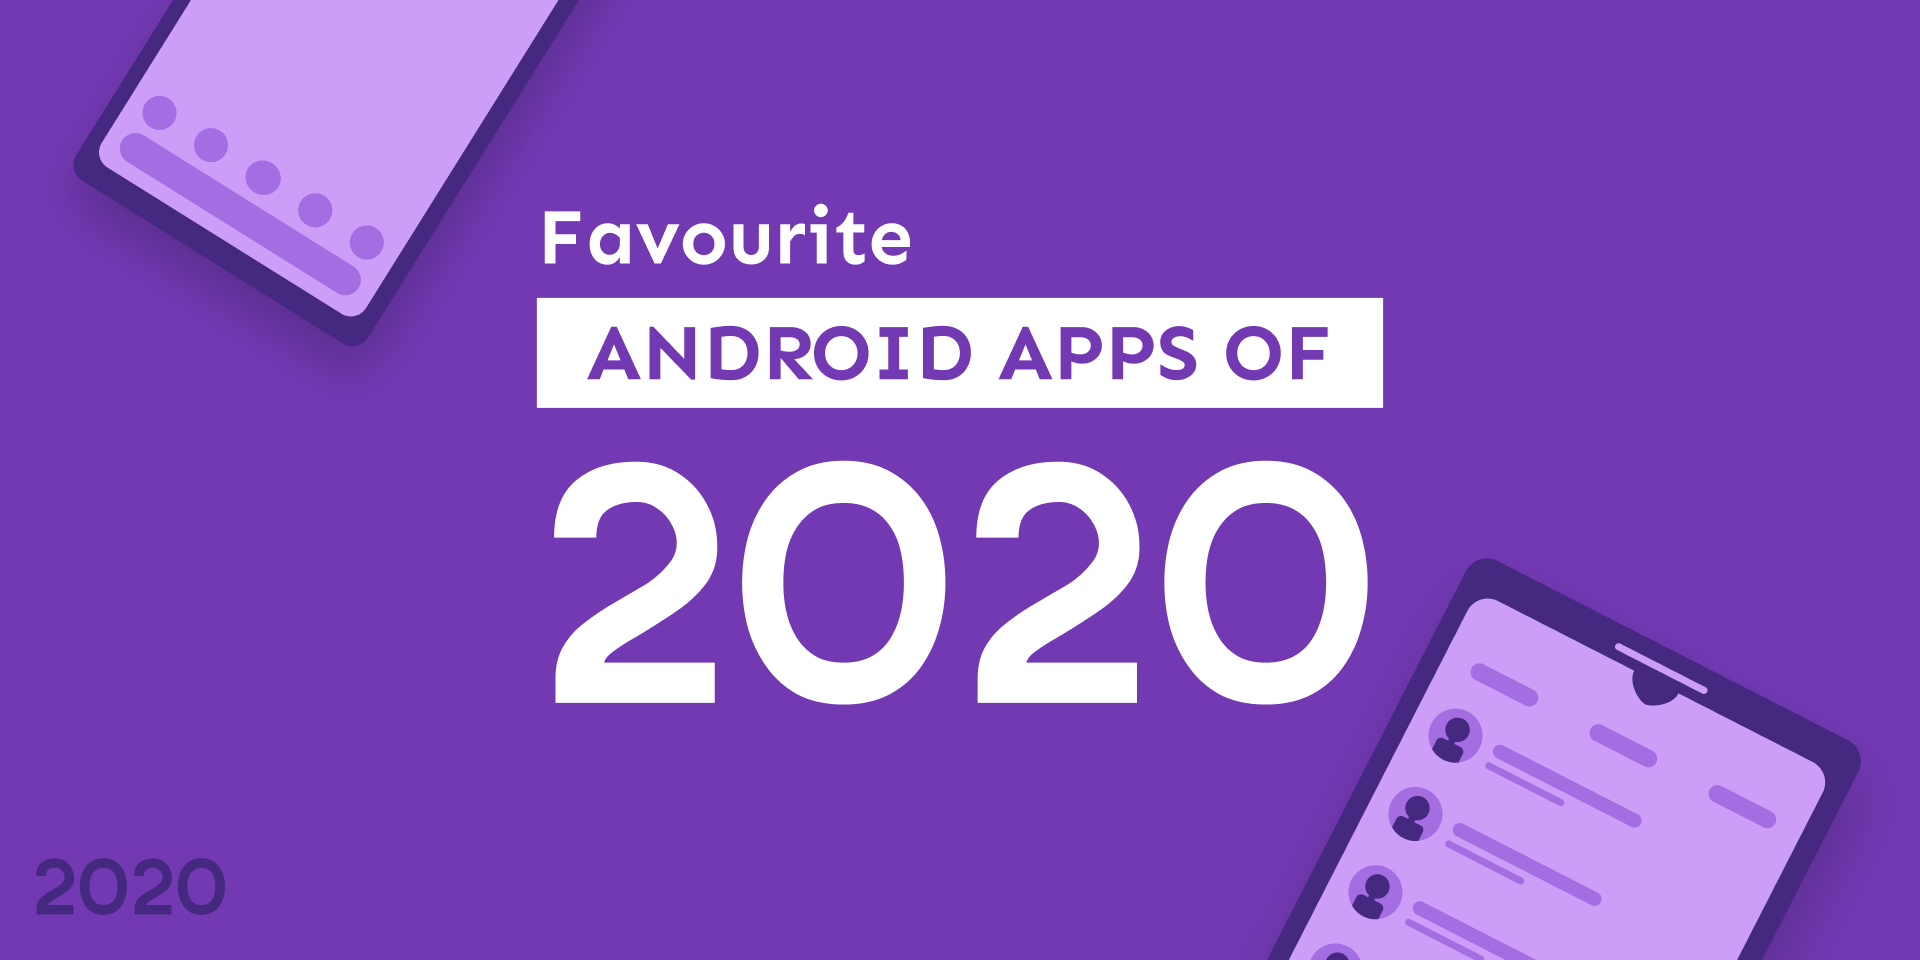 Favourite Android Apps of 2020